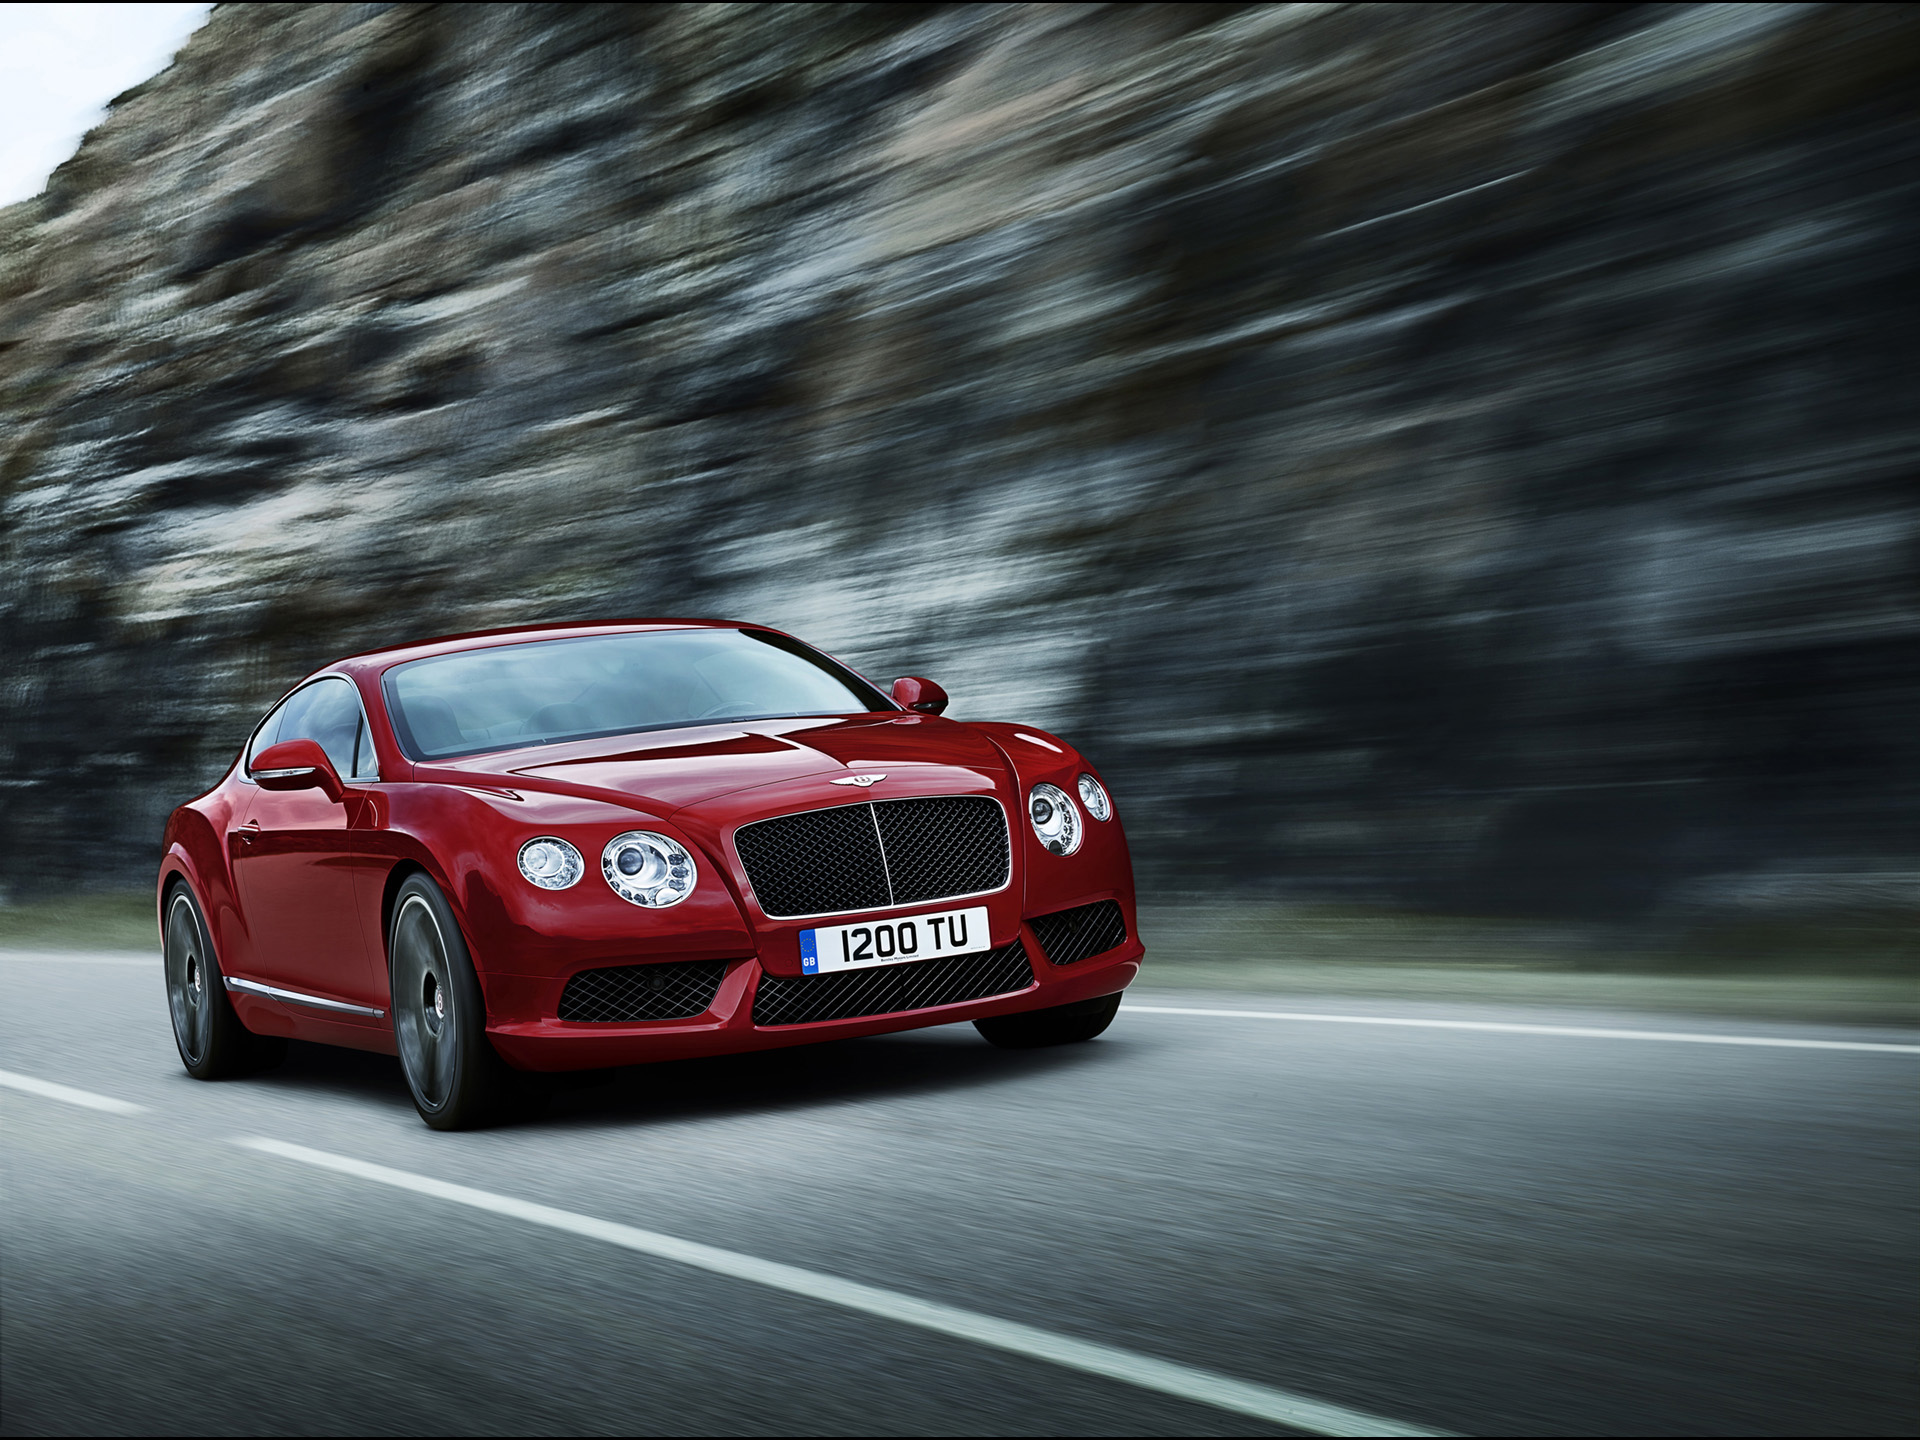 Bentley Car Amazing High Quality Hd Wallpapers All Hd Wallpapers